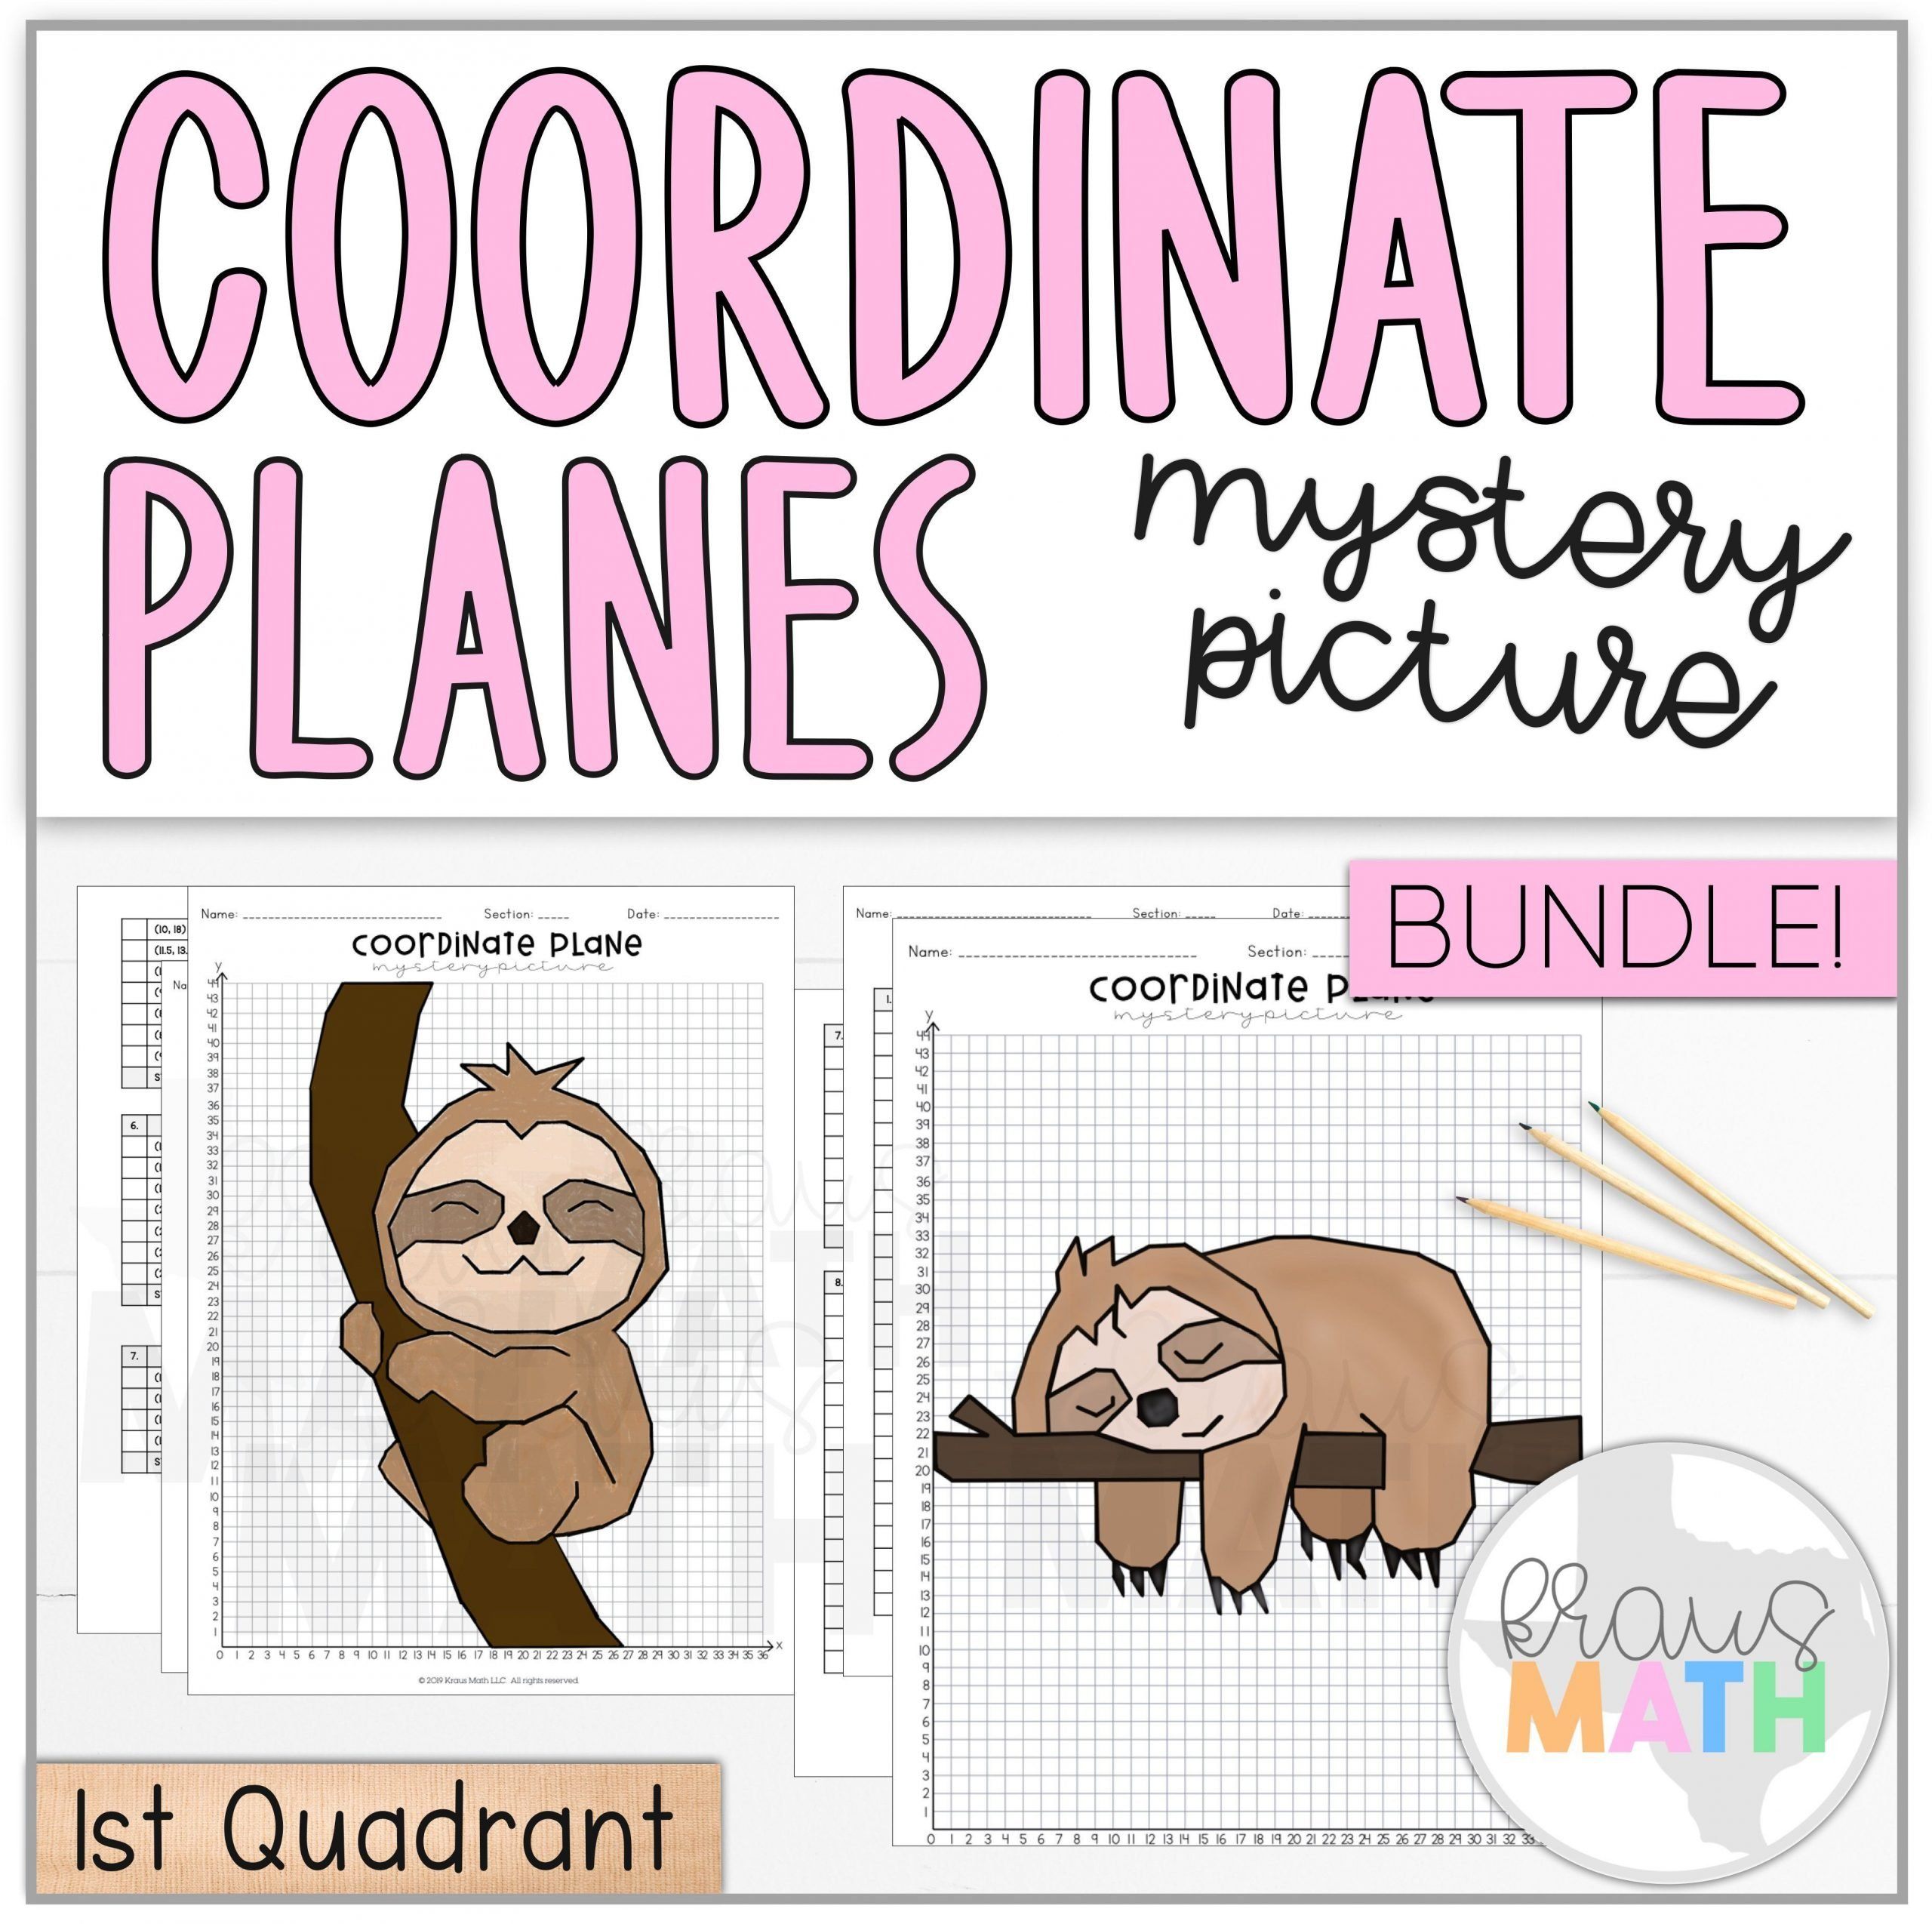 Fun Coordinate Plane Worksheets Cute Sloth Coordinate Plane Mystery Picture Bundle 1st